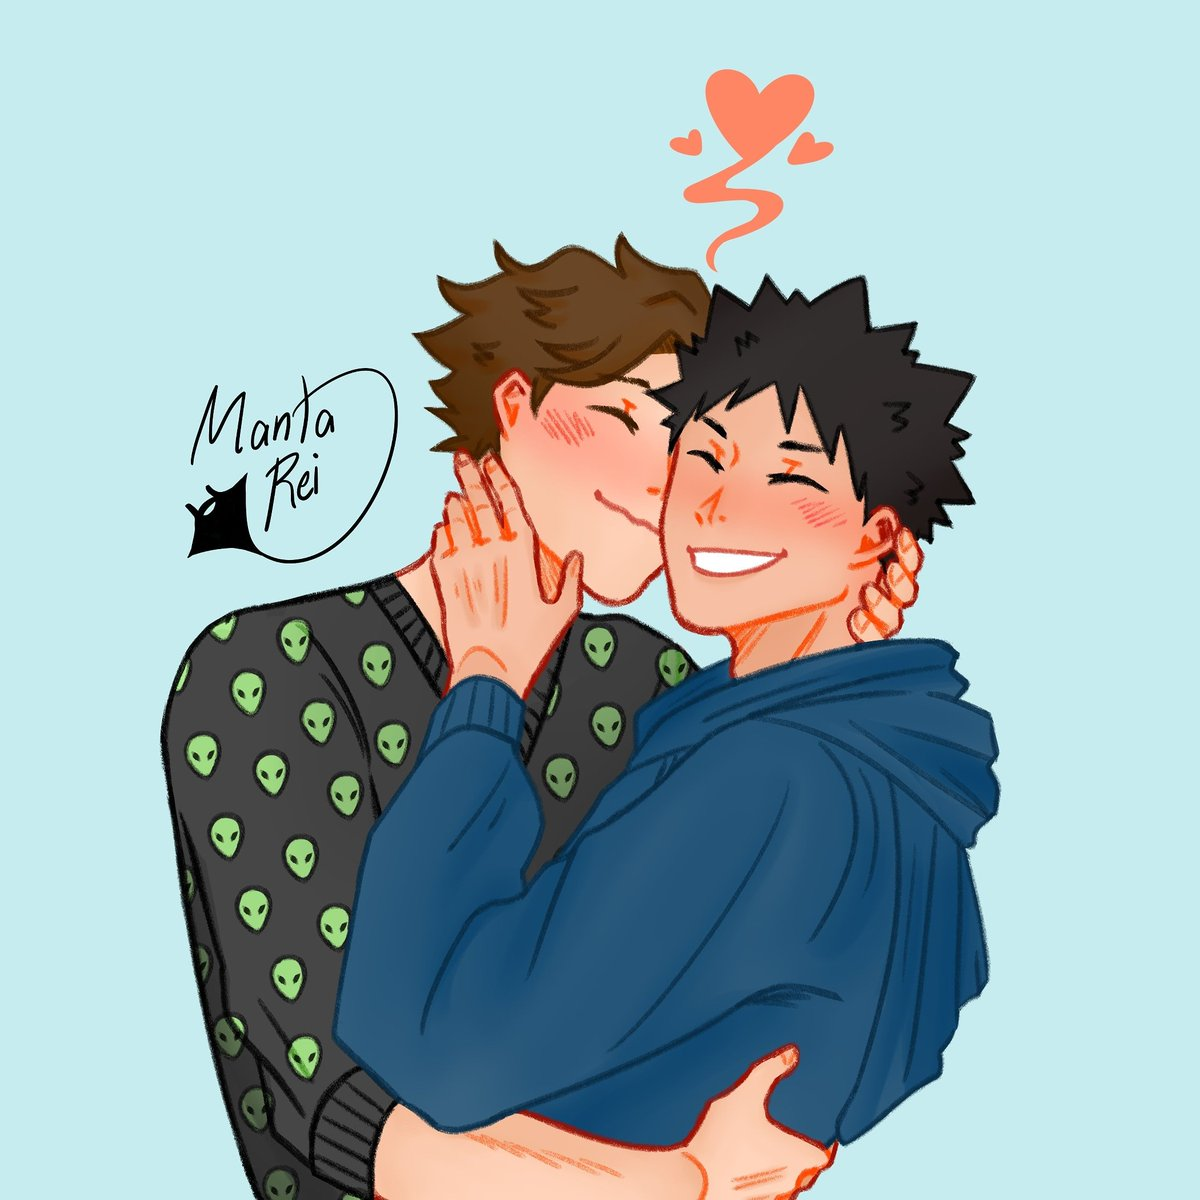 Ending the year with lots of love, ft. clumsy kisses by the great king himself    #haikyuu #haikyuufanart #iwaoi #ハイキュー